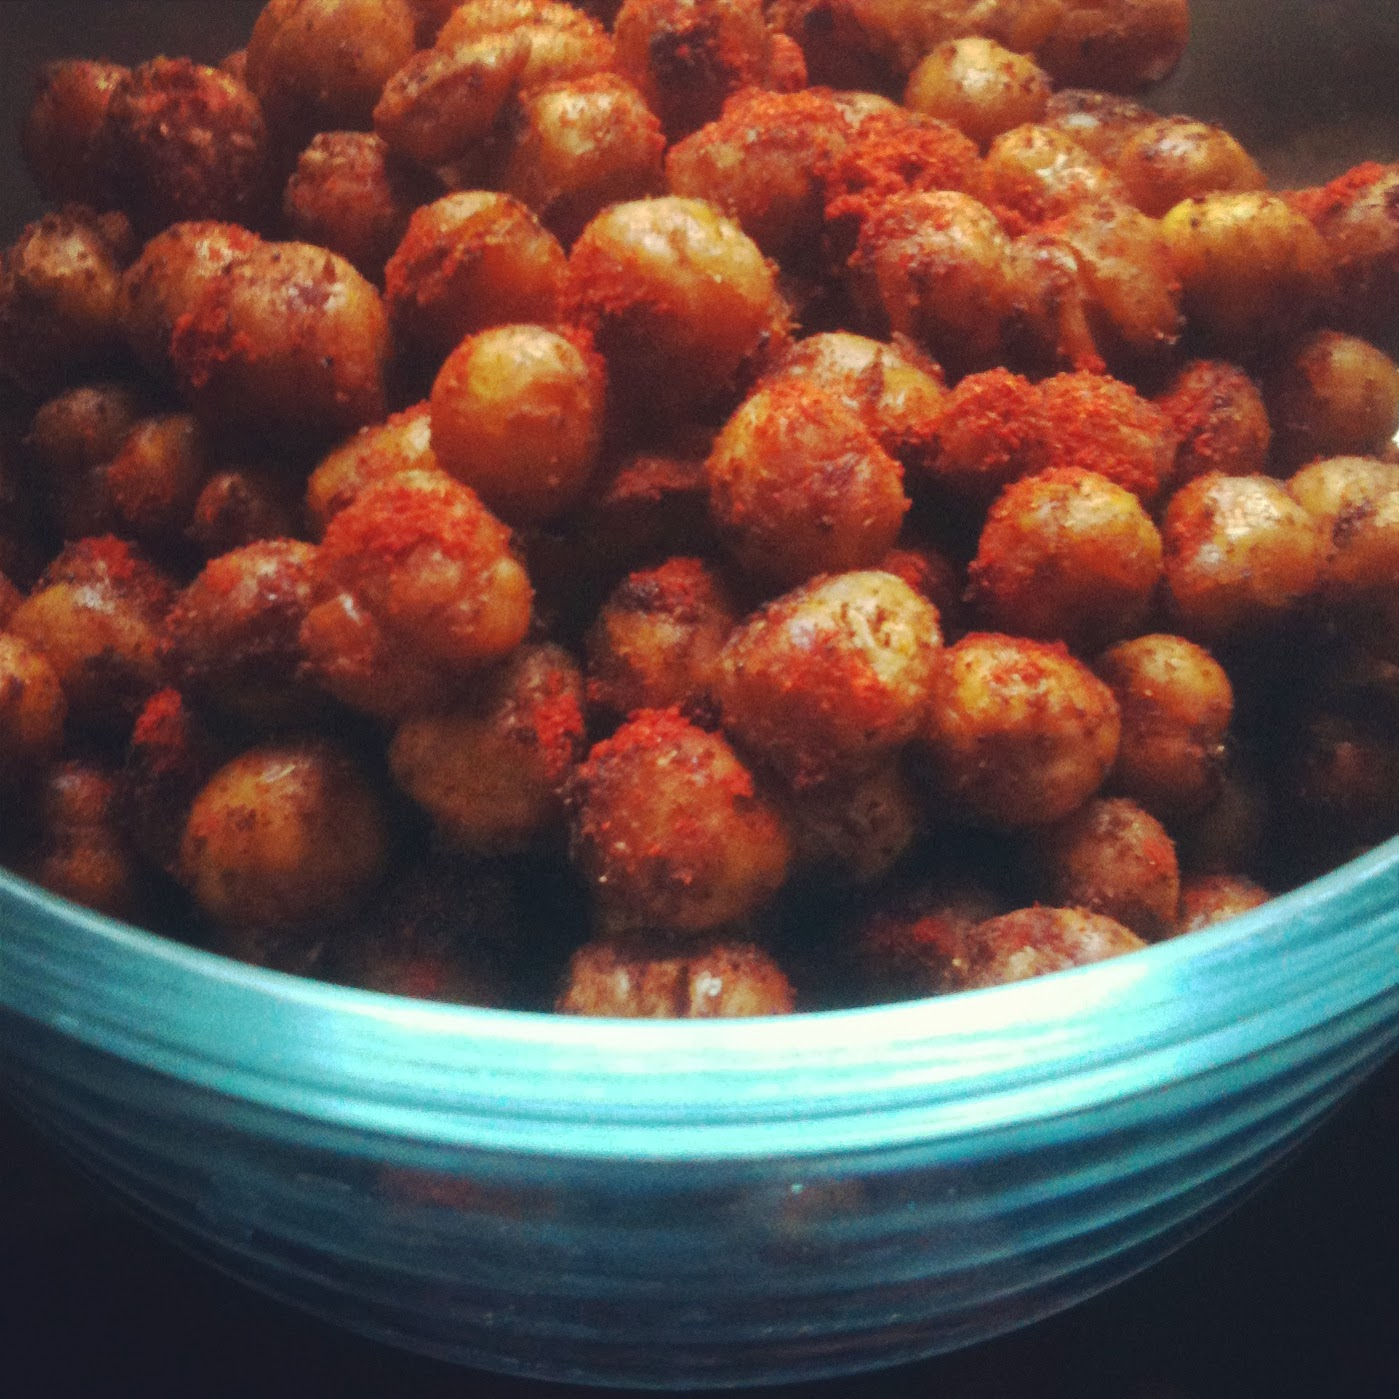 vegankind: Red Velvet Smoothie and Chickpea Poppers